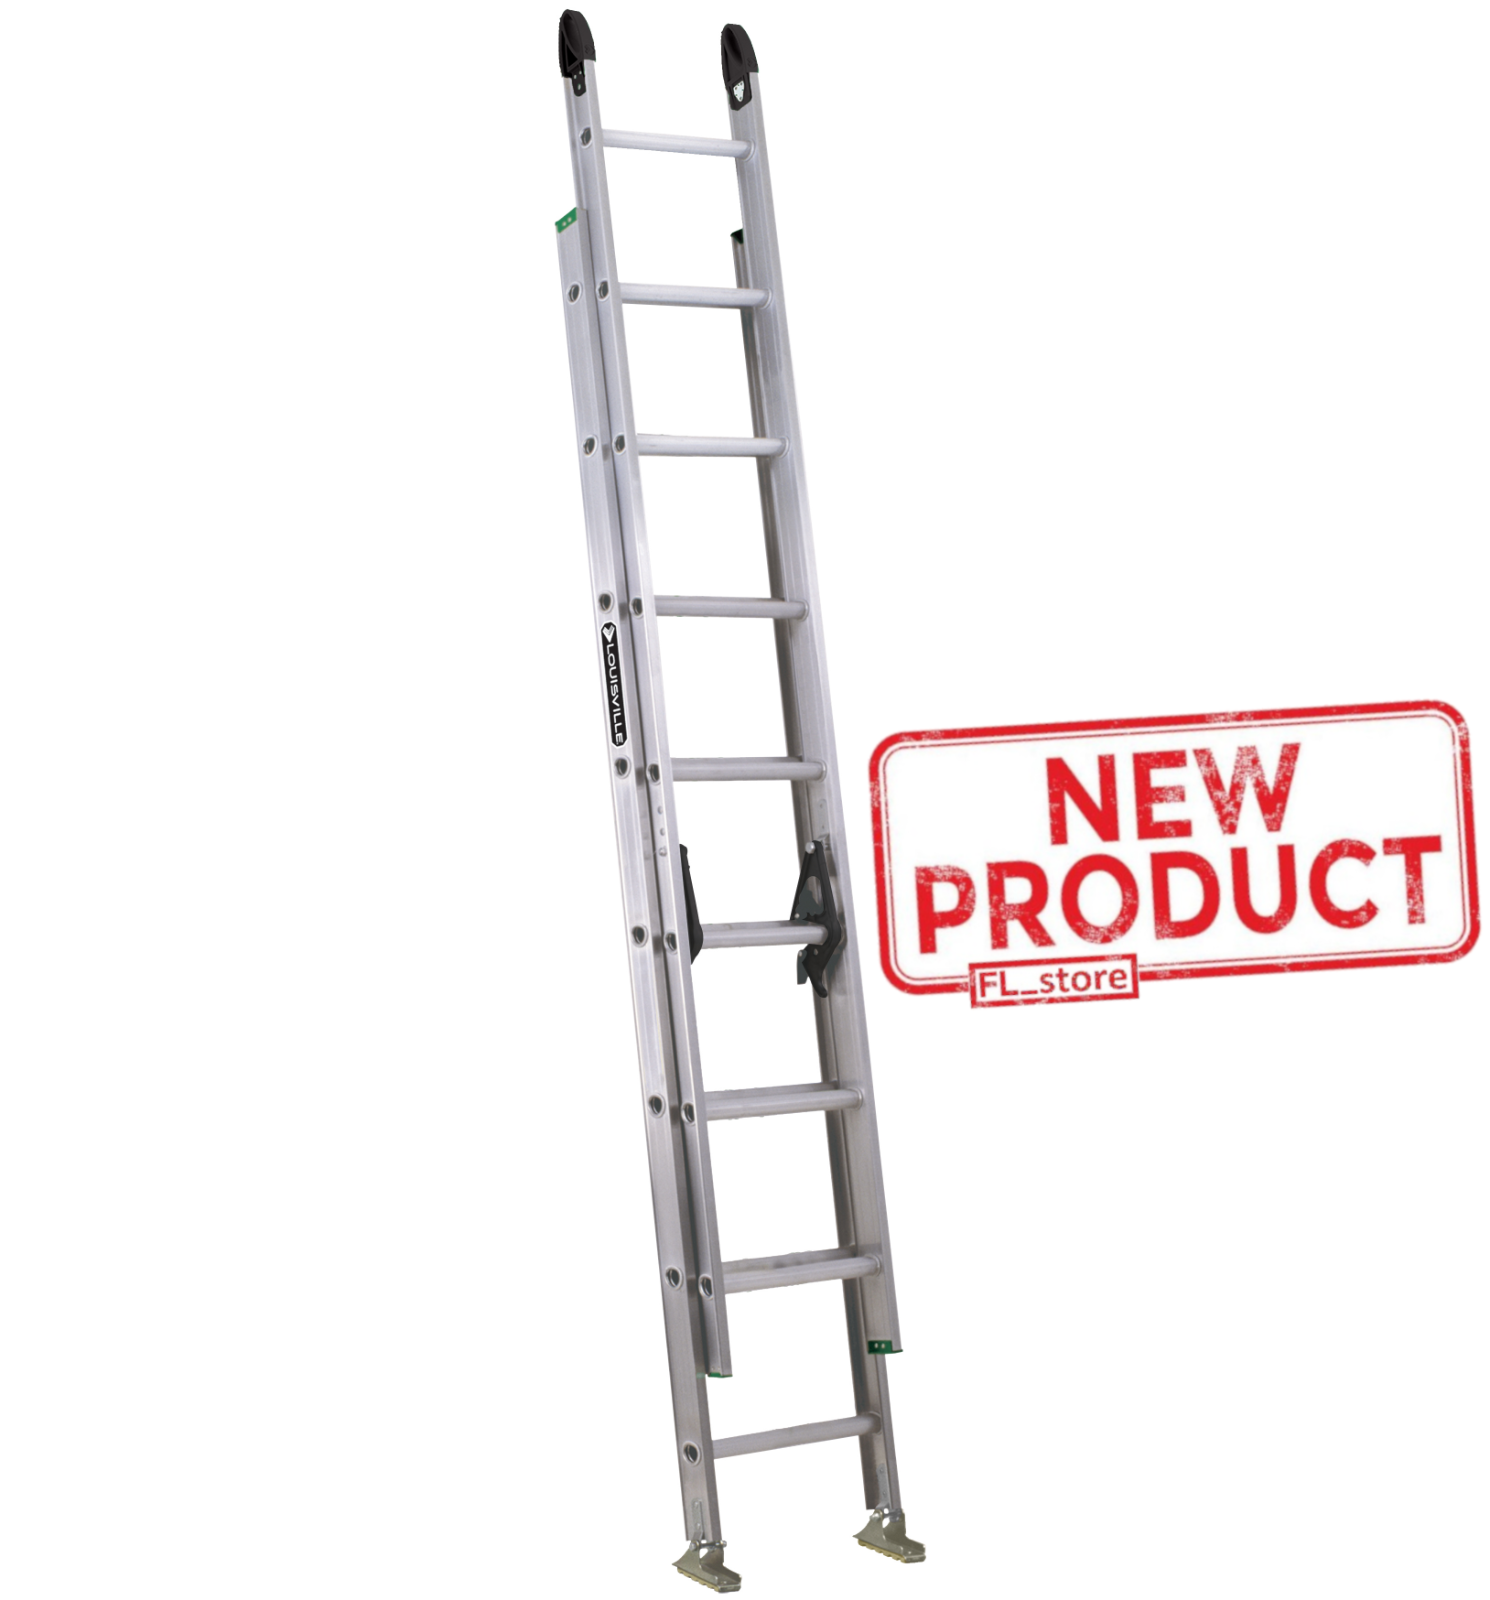 16 Feet Extension Ladder Aluminum Progrip Strong Lock Non Slip Quicklatch Silver Ladder Decor Ladderdecor In 2020 Aluminum Extension Ladder Step Ladders